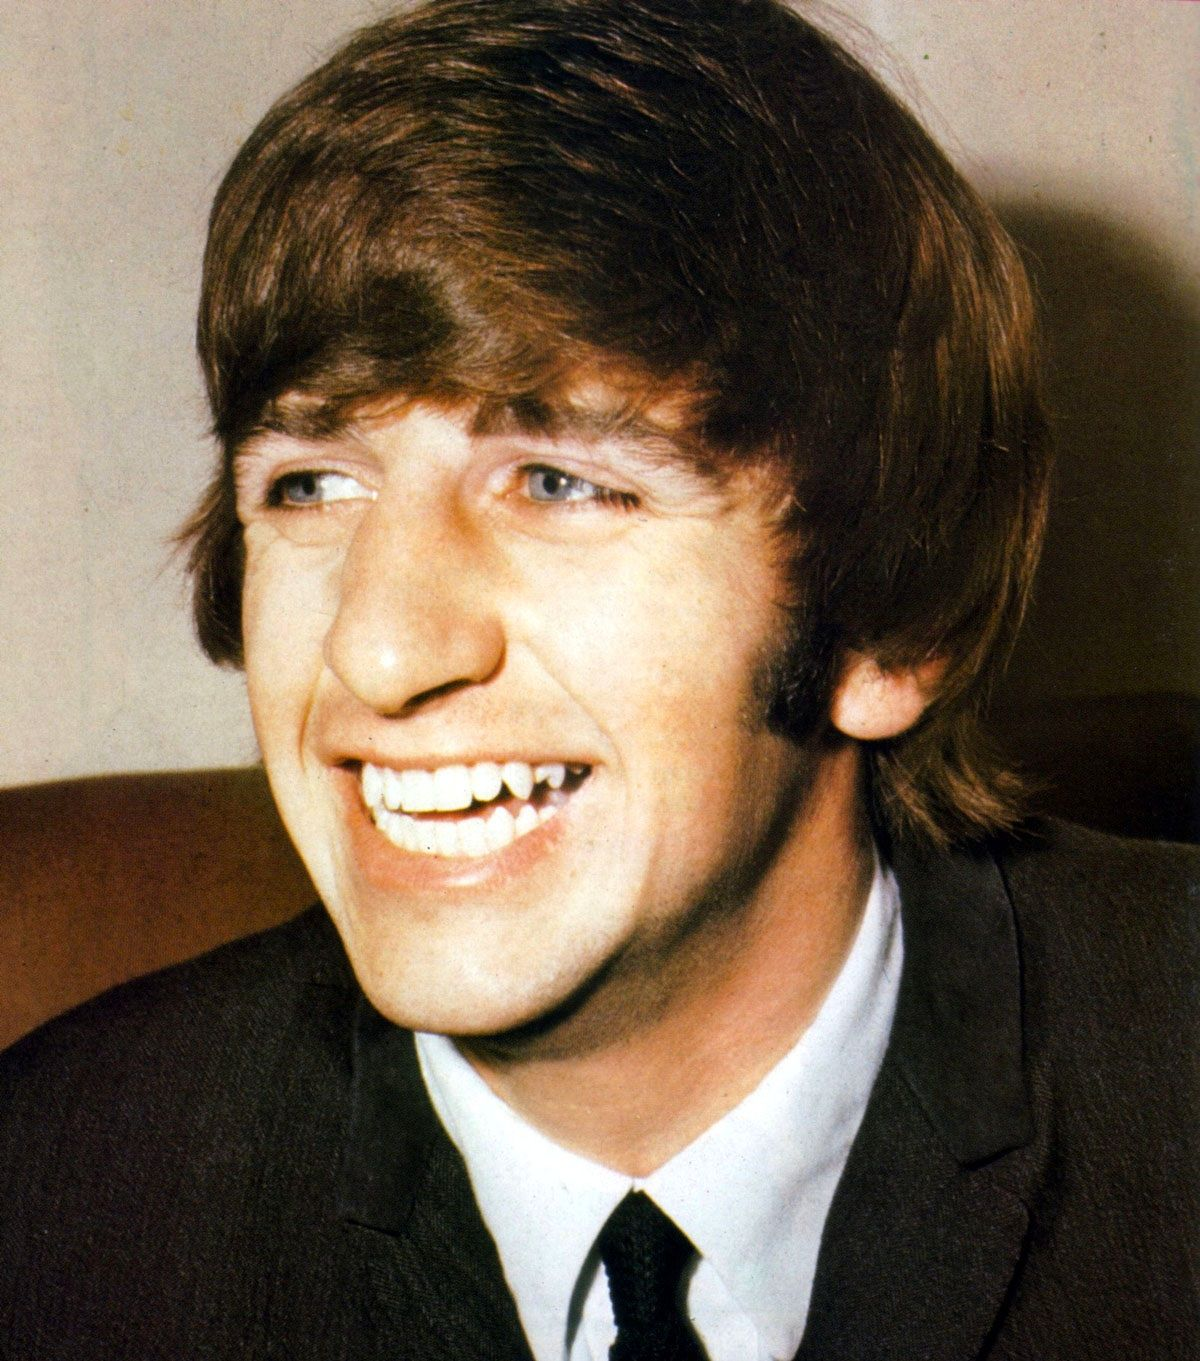 Ringo Starr Free Listening Videos Concerts Stats And Photos At Last